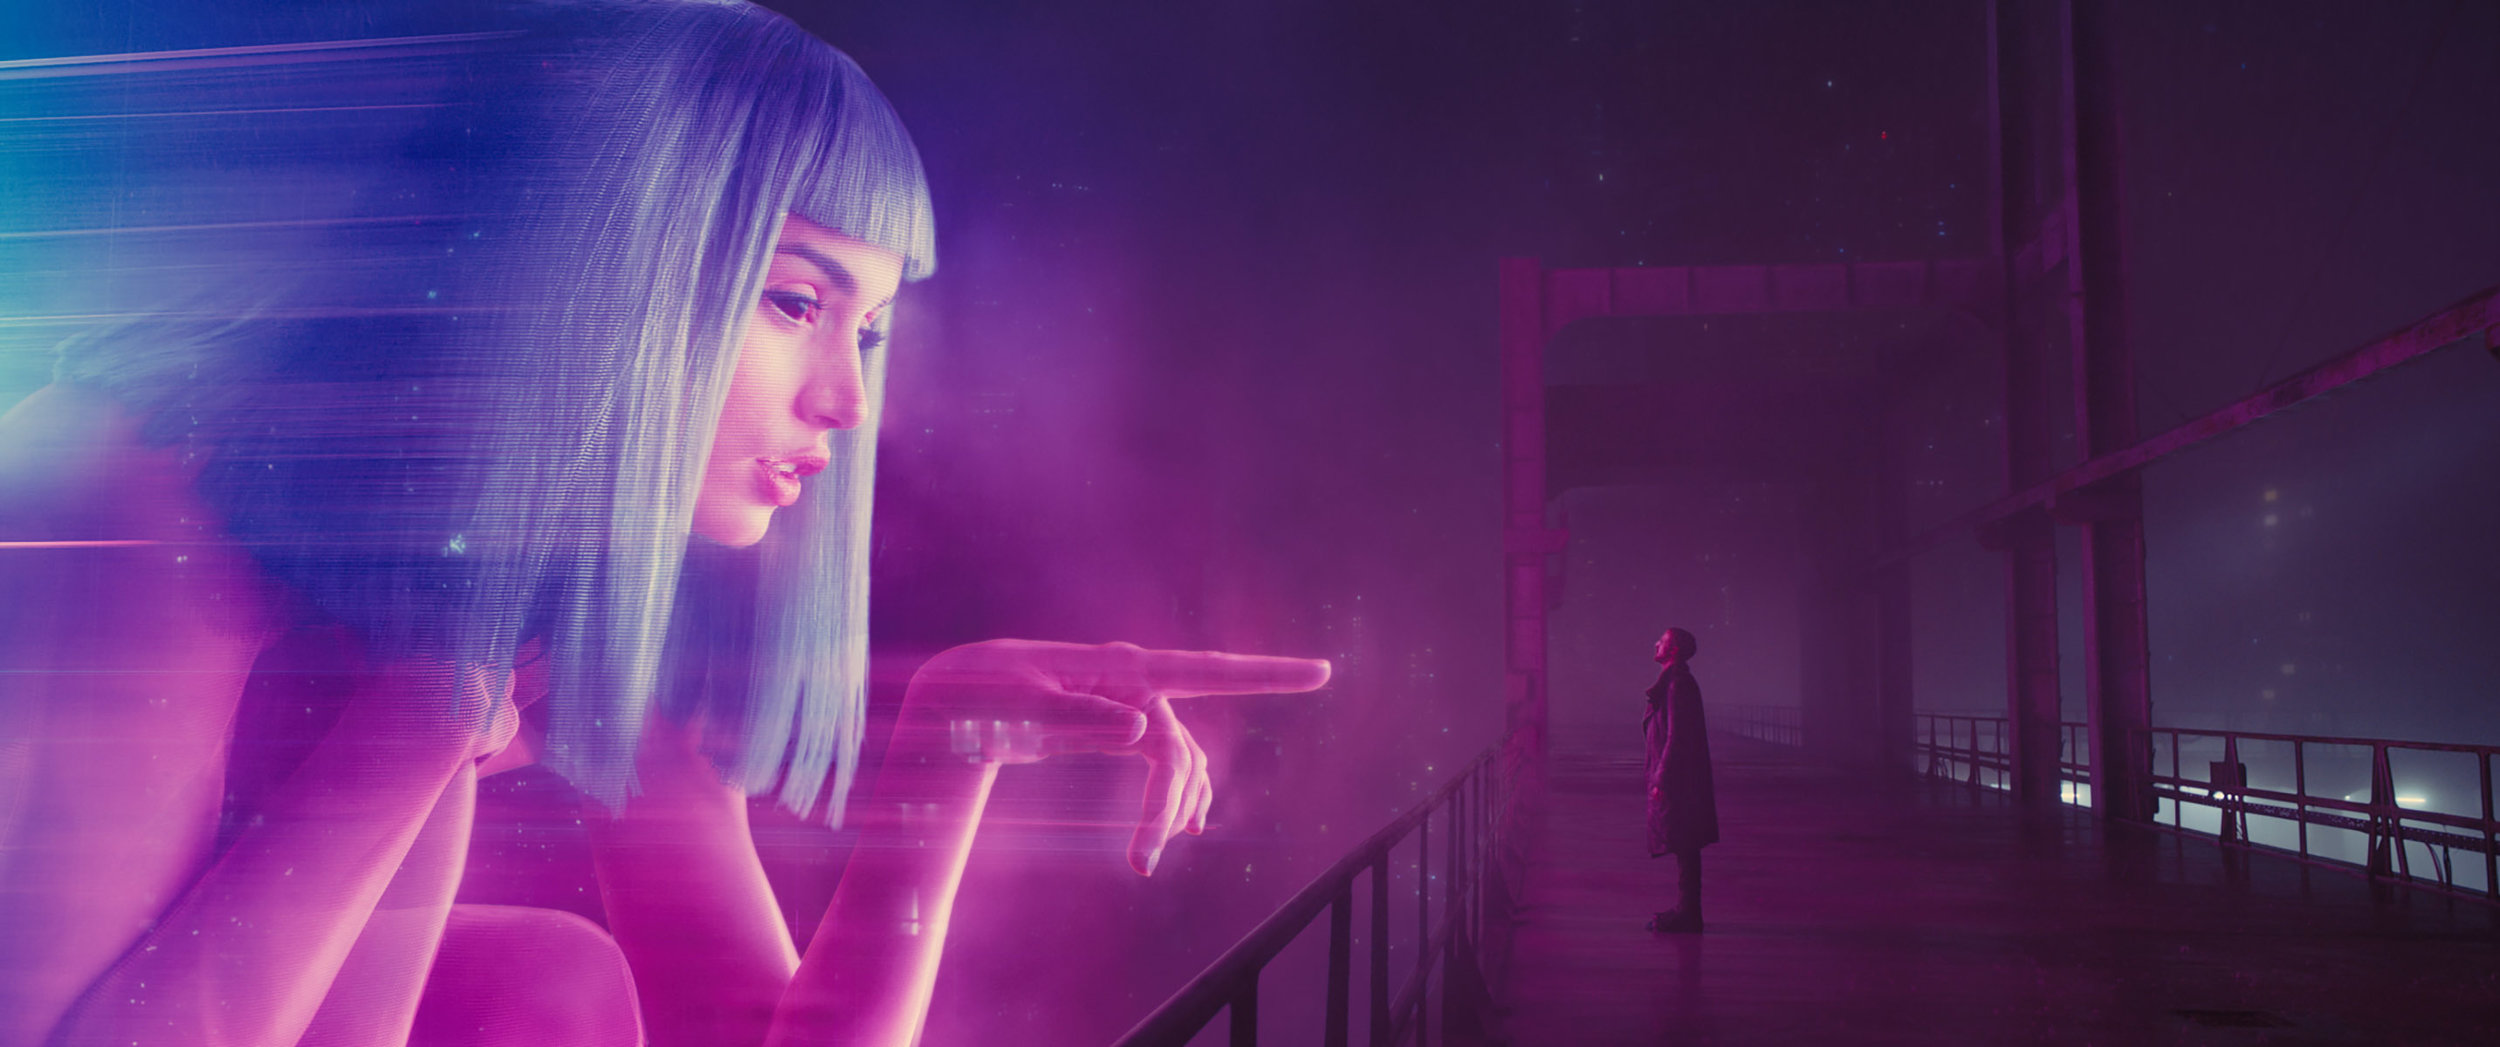 blade runner 2049 marketing content brand nick hussey.jpg